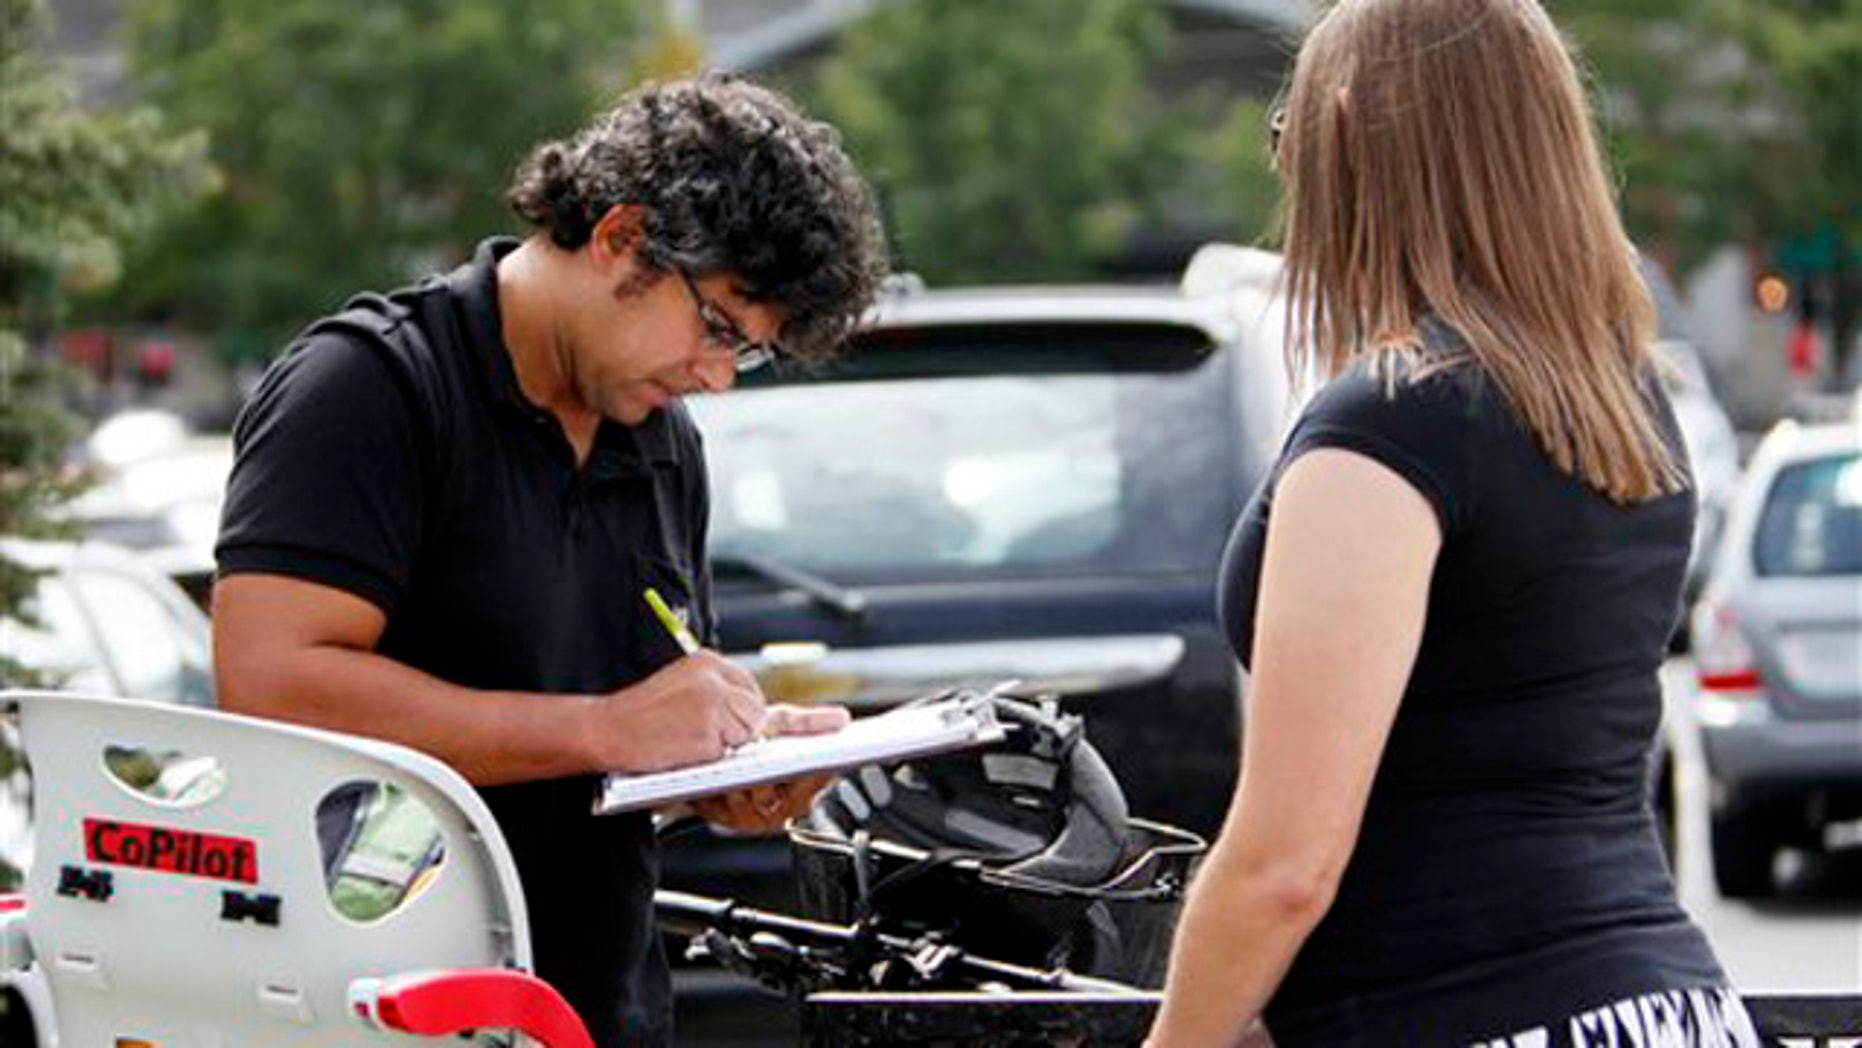 In this Sept. 9, 2011, photo, Mellissa Brown, right, a volunteer for Organizing for America, collects a signature from Jay Gupta for a petition in Columbus, Ohio, in a ballot repeal effort by opponents of the Ohio's new elections law.